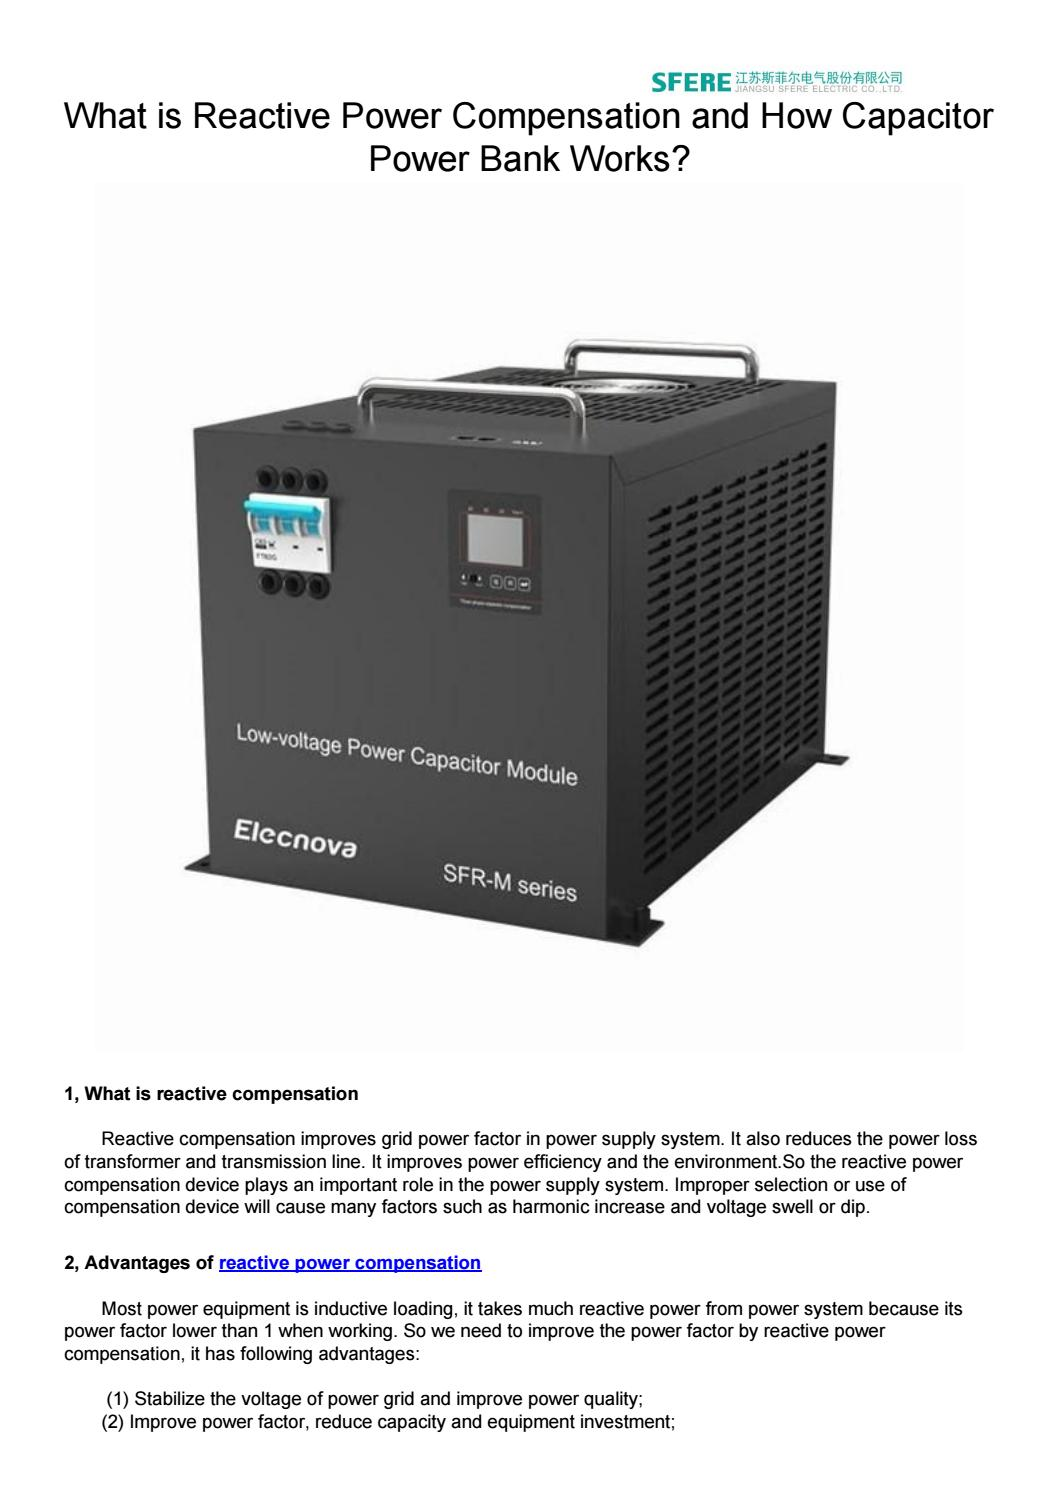 What Is Reactive Power Compensation And How Capacitor Power Bank Works By Sfereelect Issuu